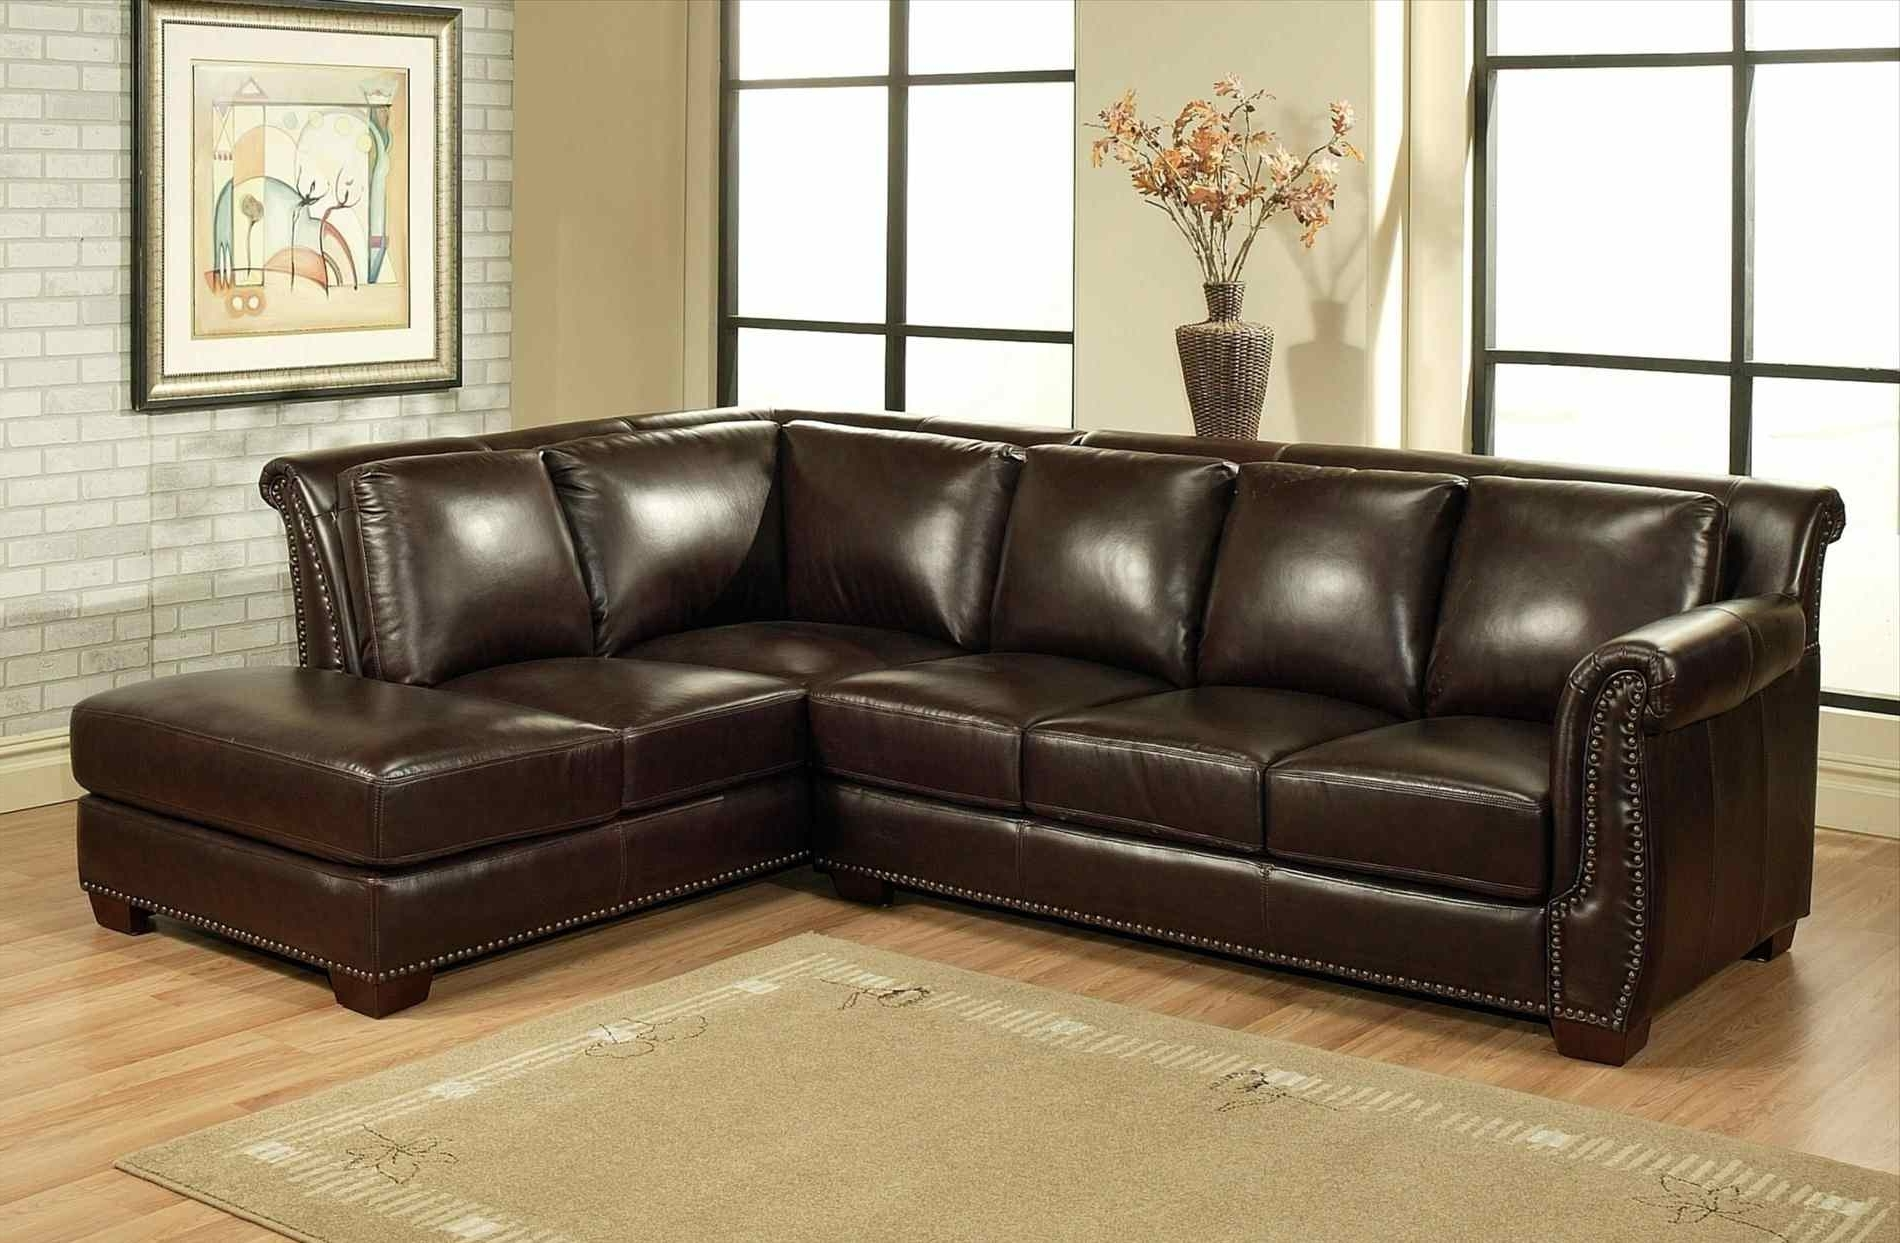 Couch : Furniture Bad Boy Sectional Es Wrap Around Couch Furniture With Regard To Famous Sectional Sofas At Bad Boy (View 11 of 15)